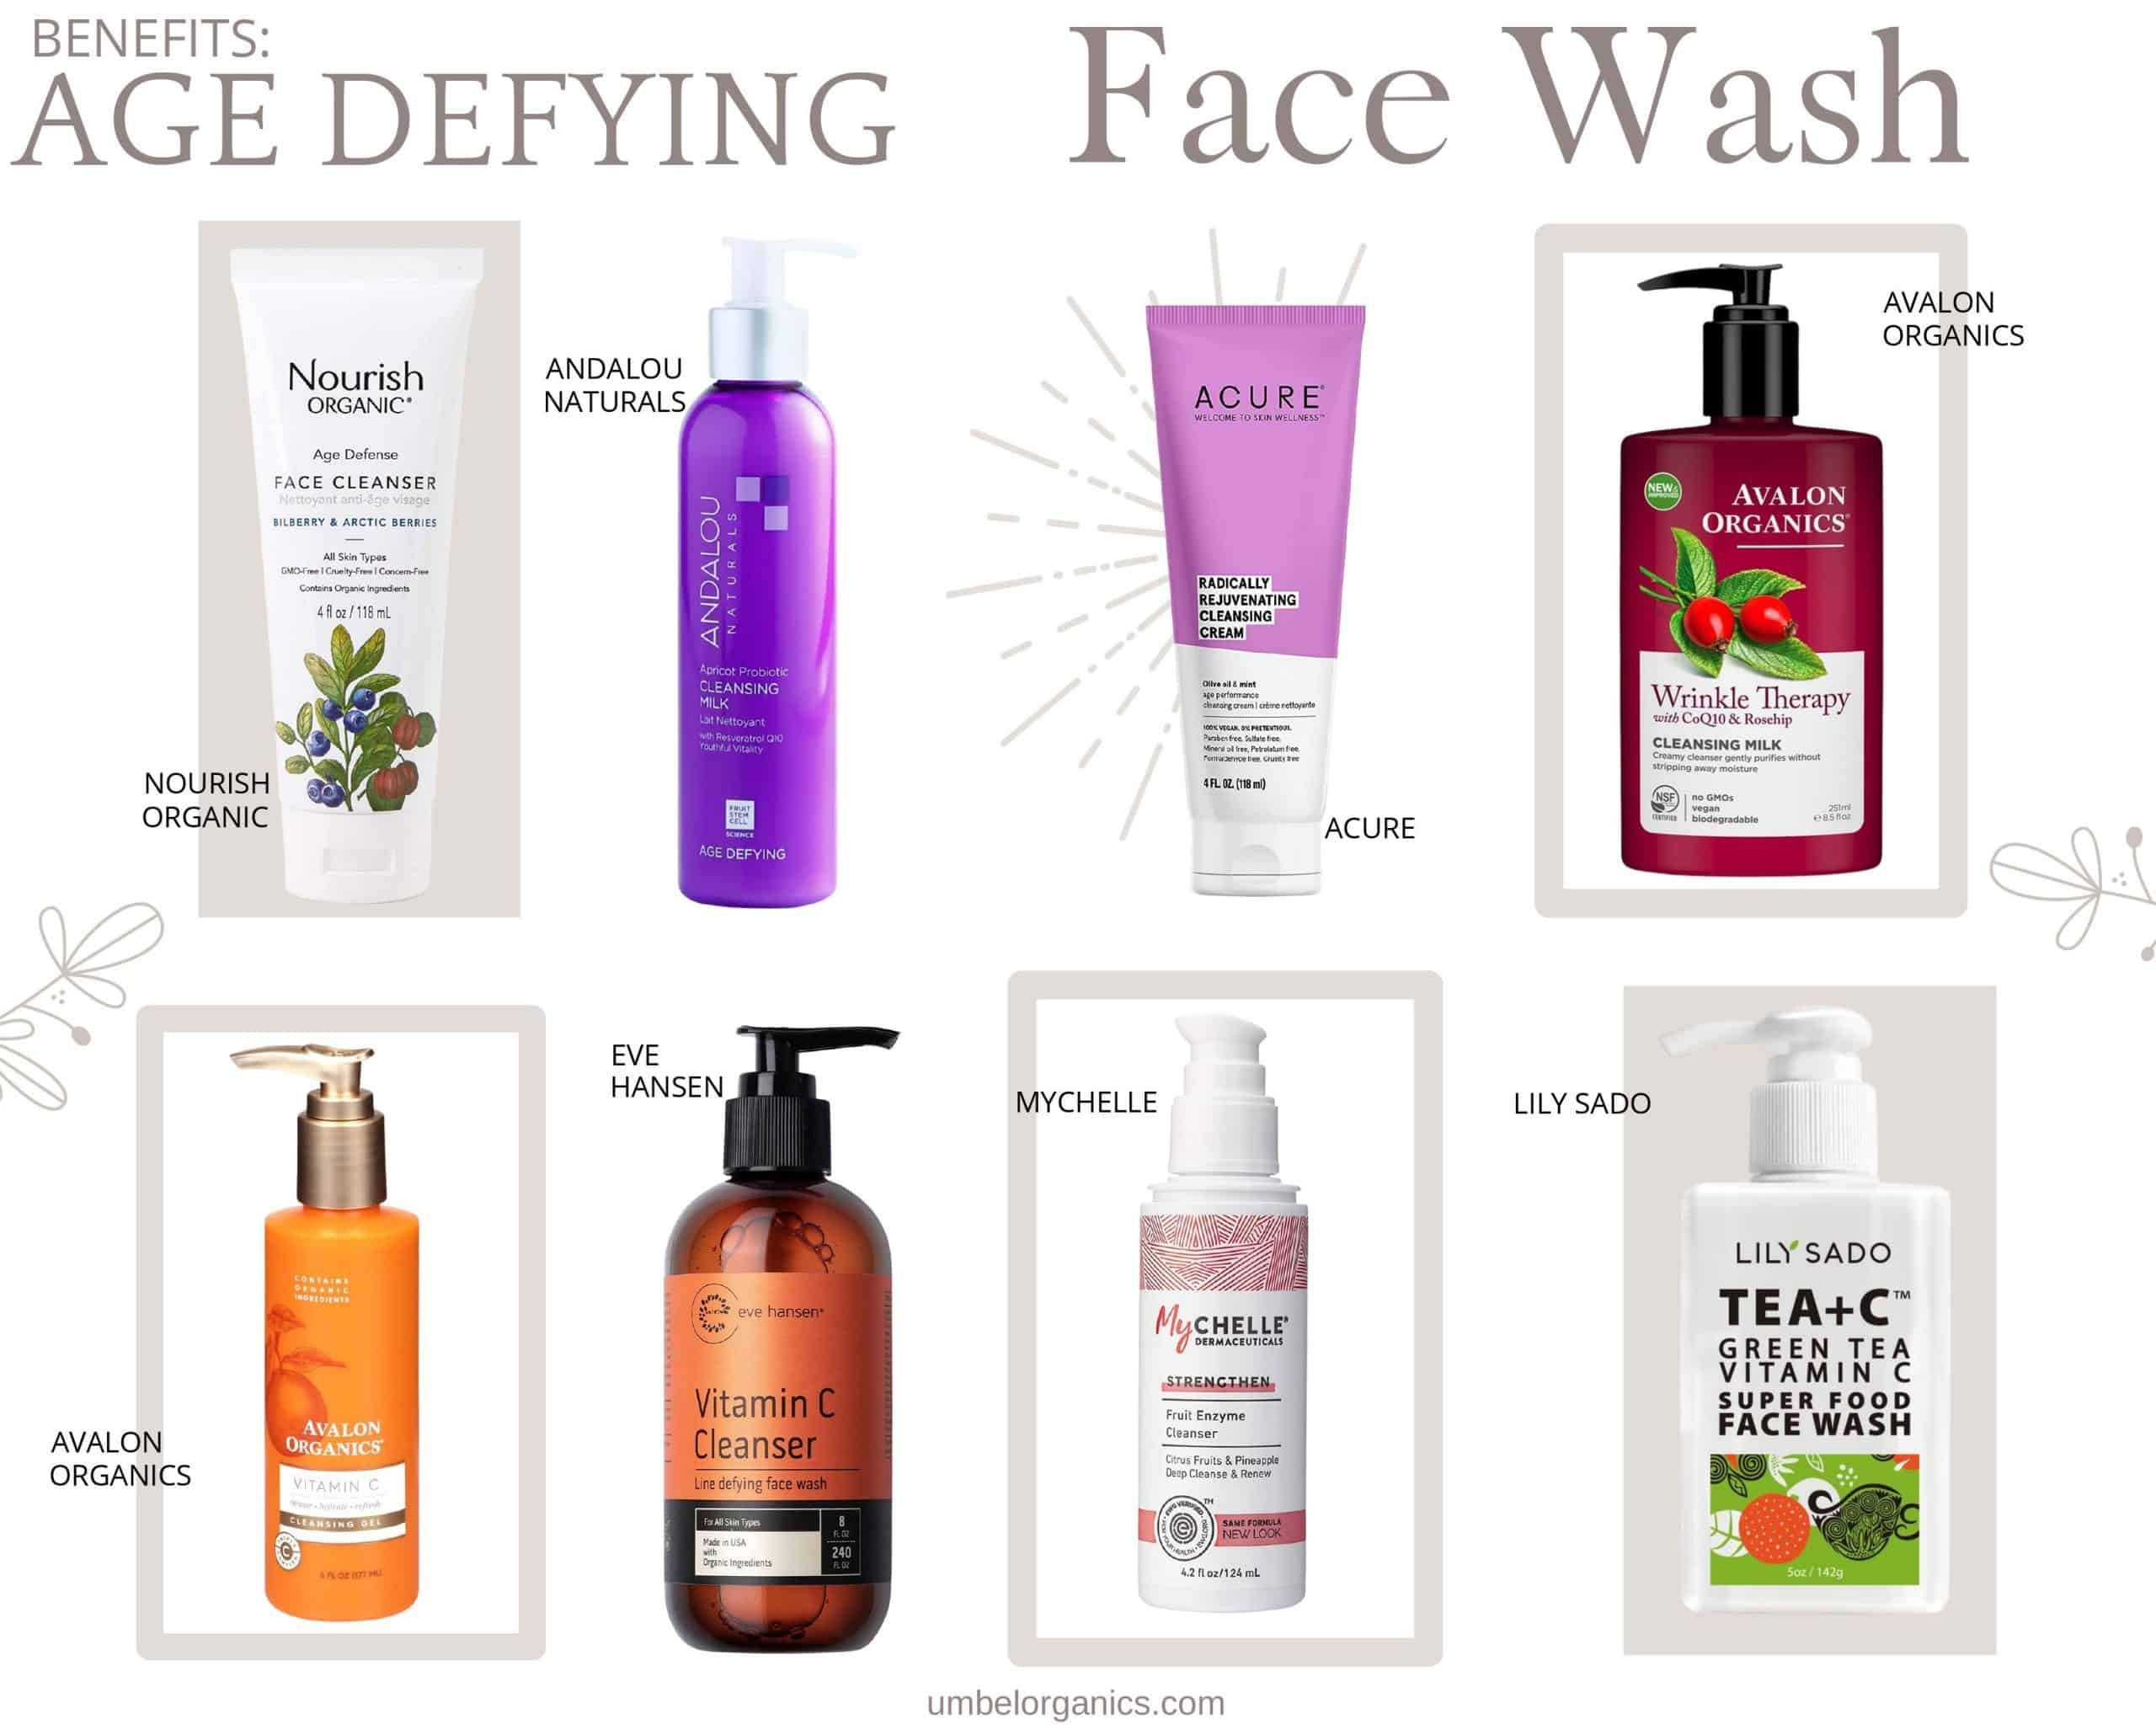 Budget-Friendly Age Defying Face Wash